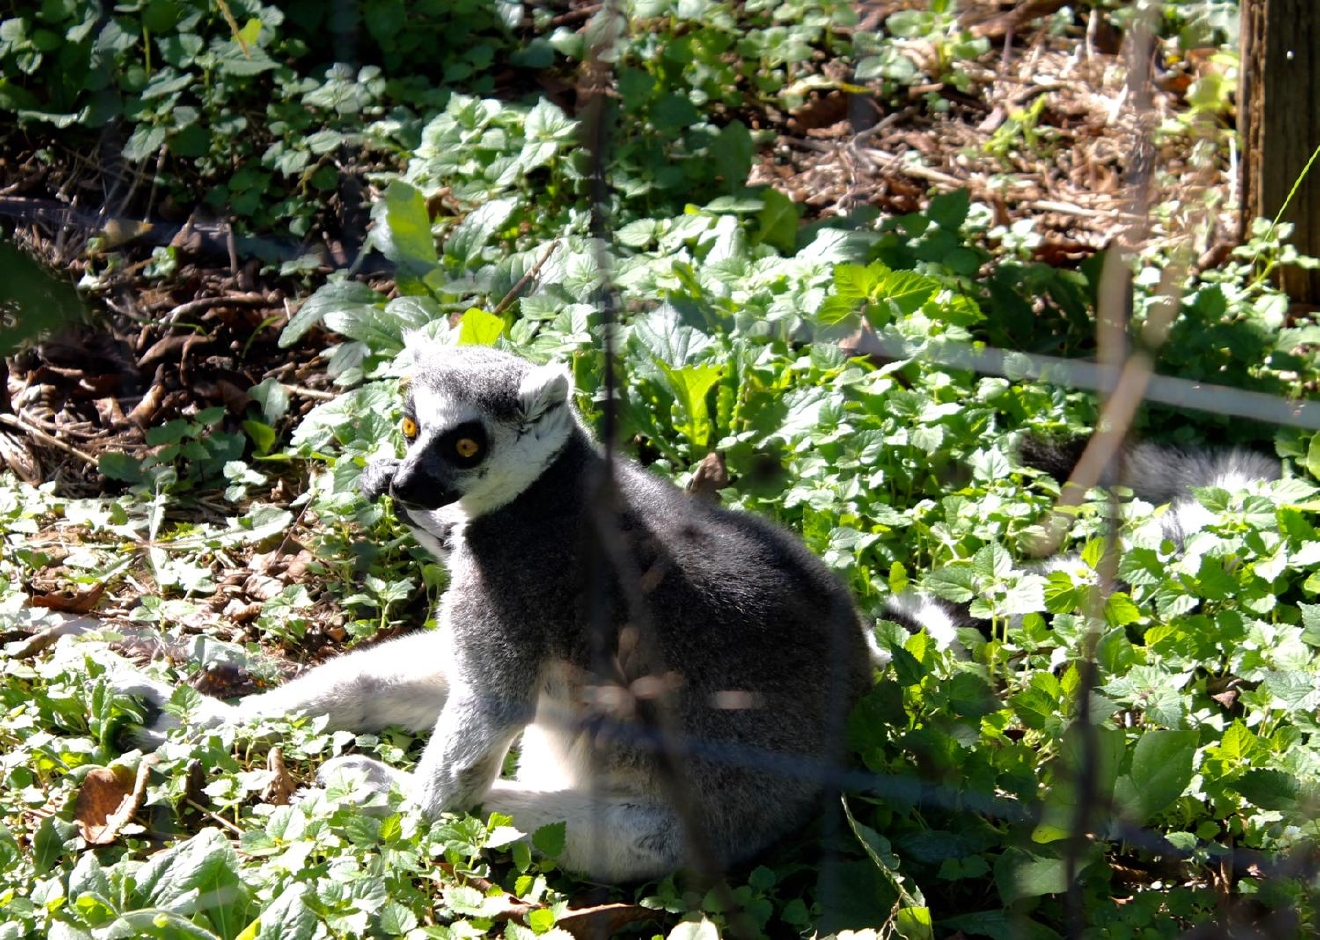 Ring-Tailed Lemurs, usually found in the southwestern highlands of Madagascar, have distinctive tails consisting of 13 alternating black and white bands. / Image: Rose Brewington